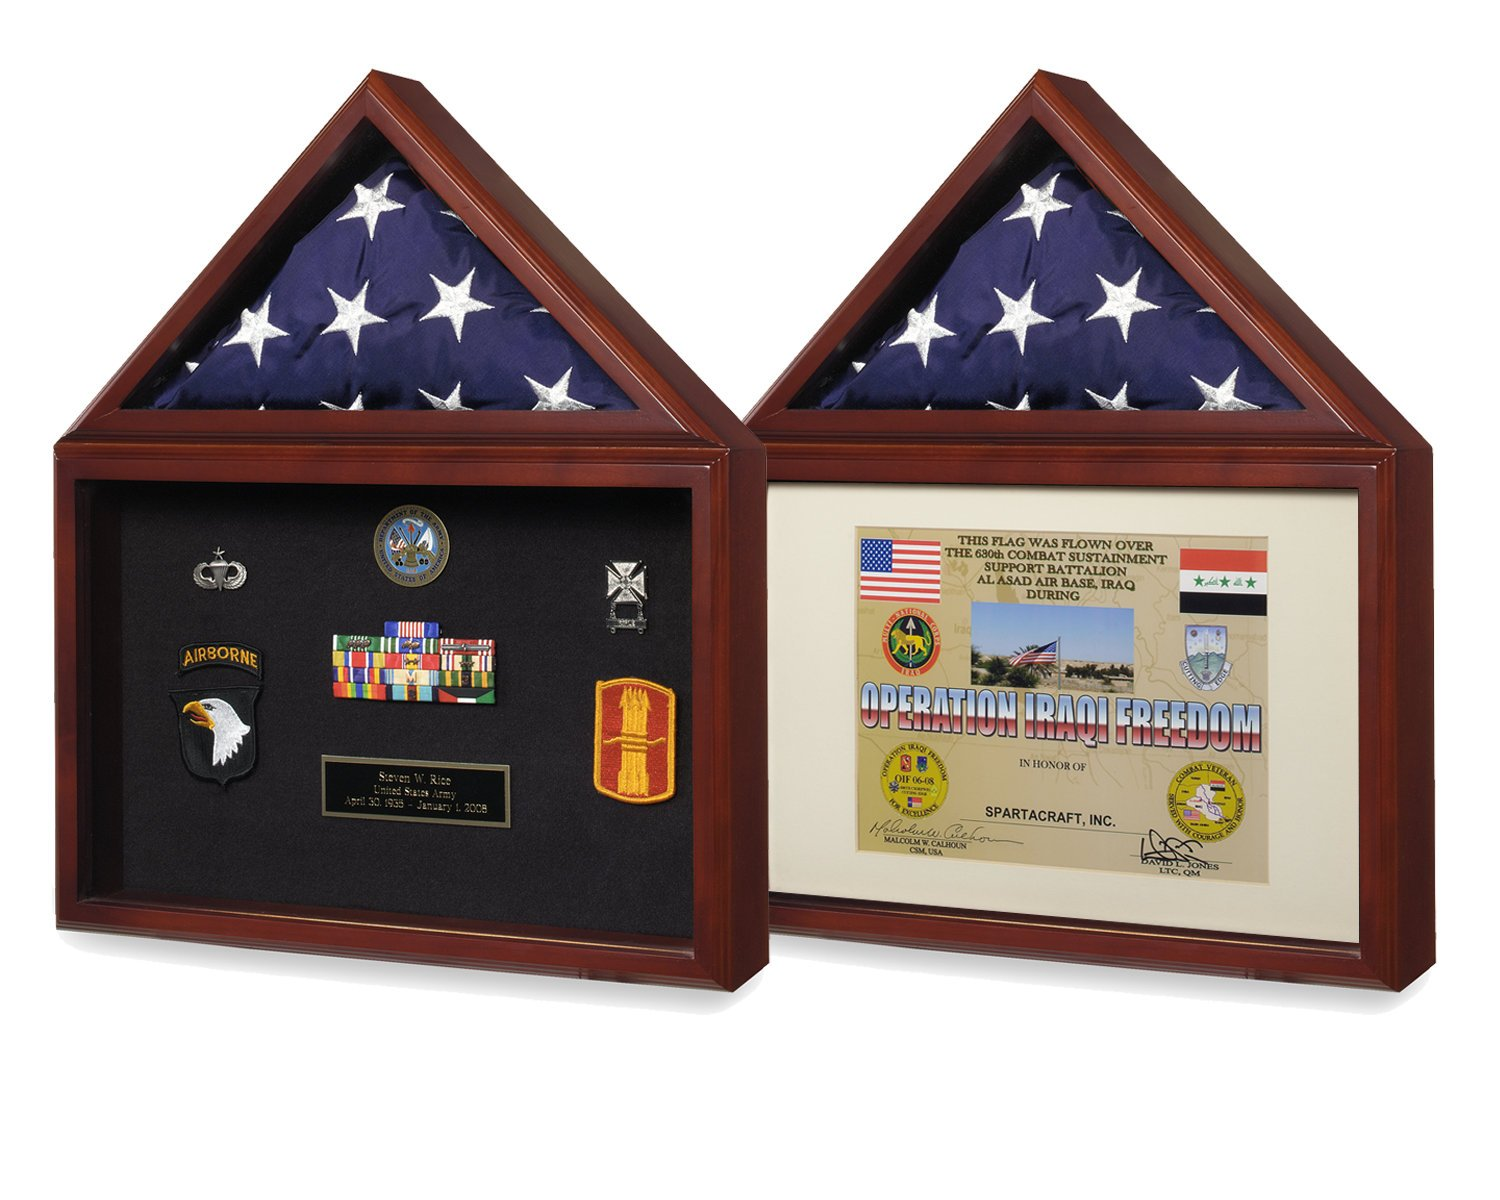 Reversible American Capitol Flag & Certificate Display Case Shadow Box for 3X5 USA Flag & 8.5X11'' Official Paper Document or Medals Showcase For Government Army Navy Air Force Coast Guard Marine Corps by SpartaCraft